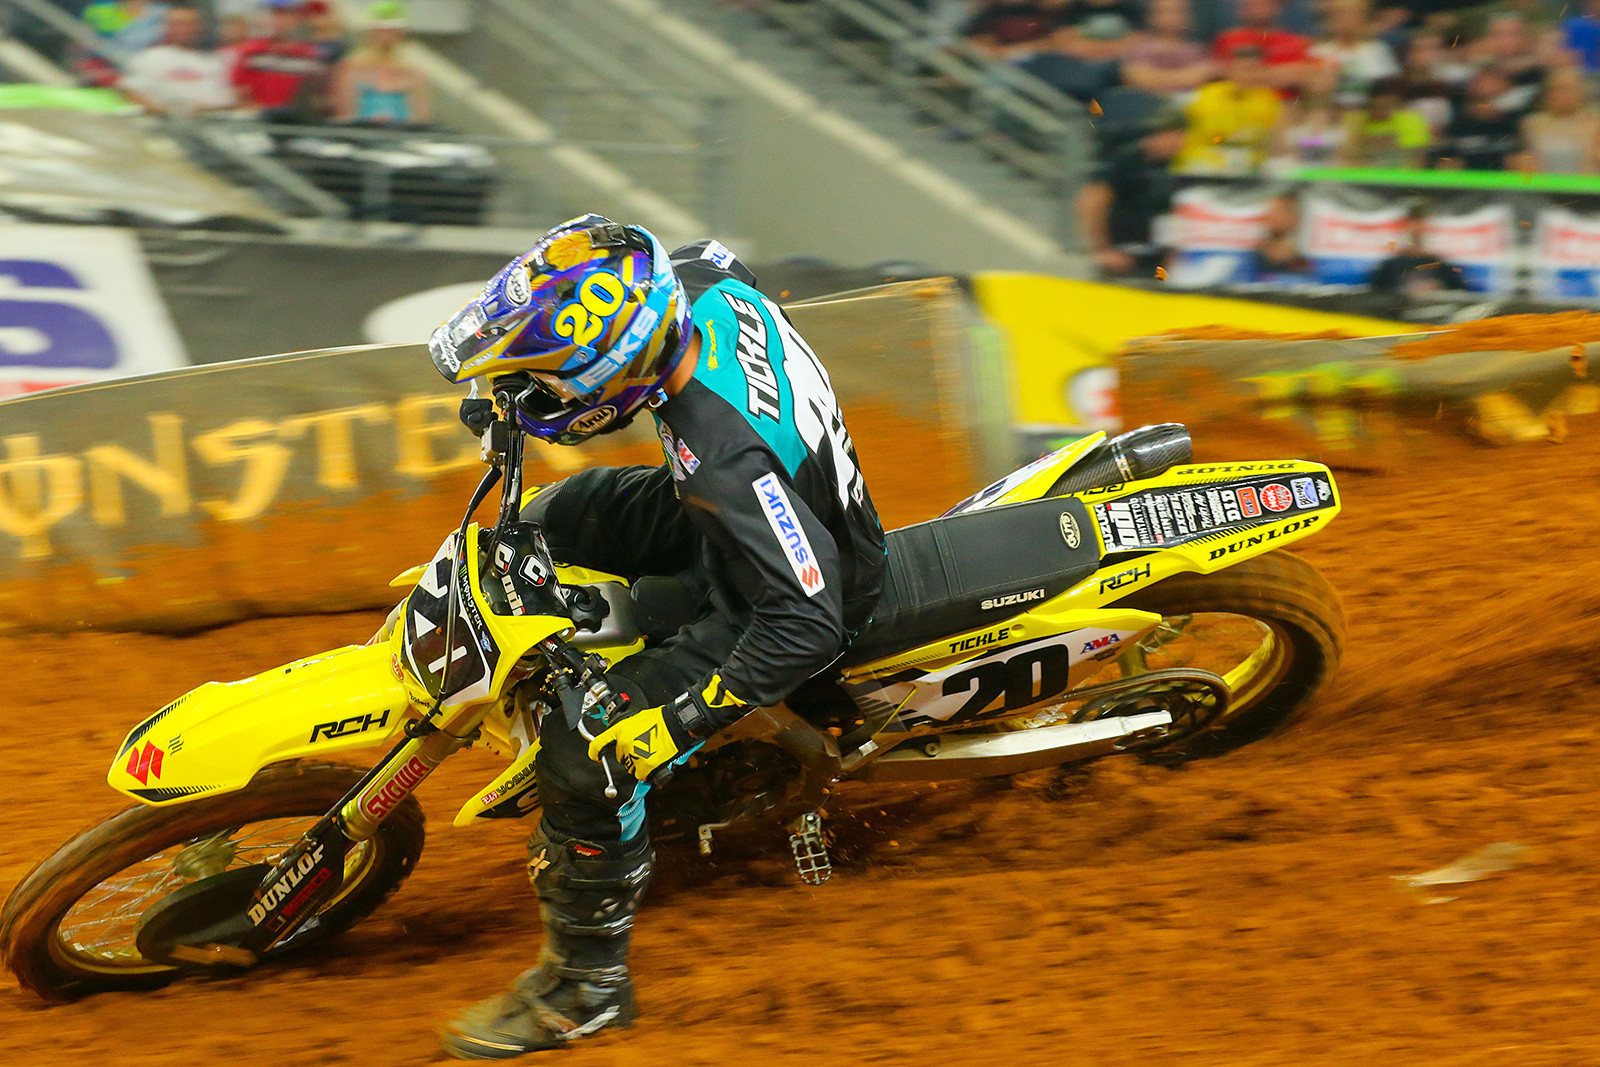 Arlington Career Center >> Broc Tickle to Miss Final Two Rounds of Supercross - Motocross Press Releases - Vital MX